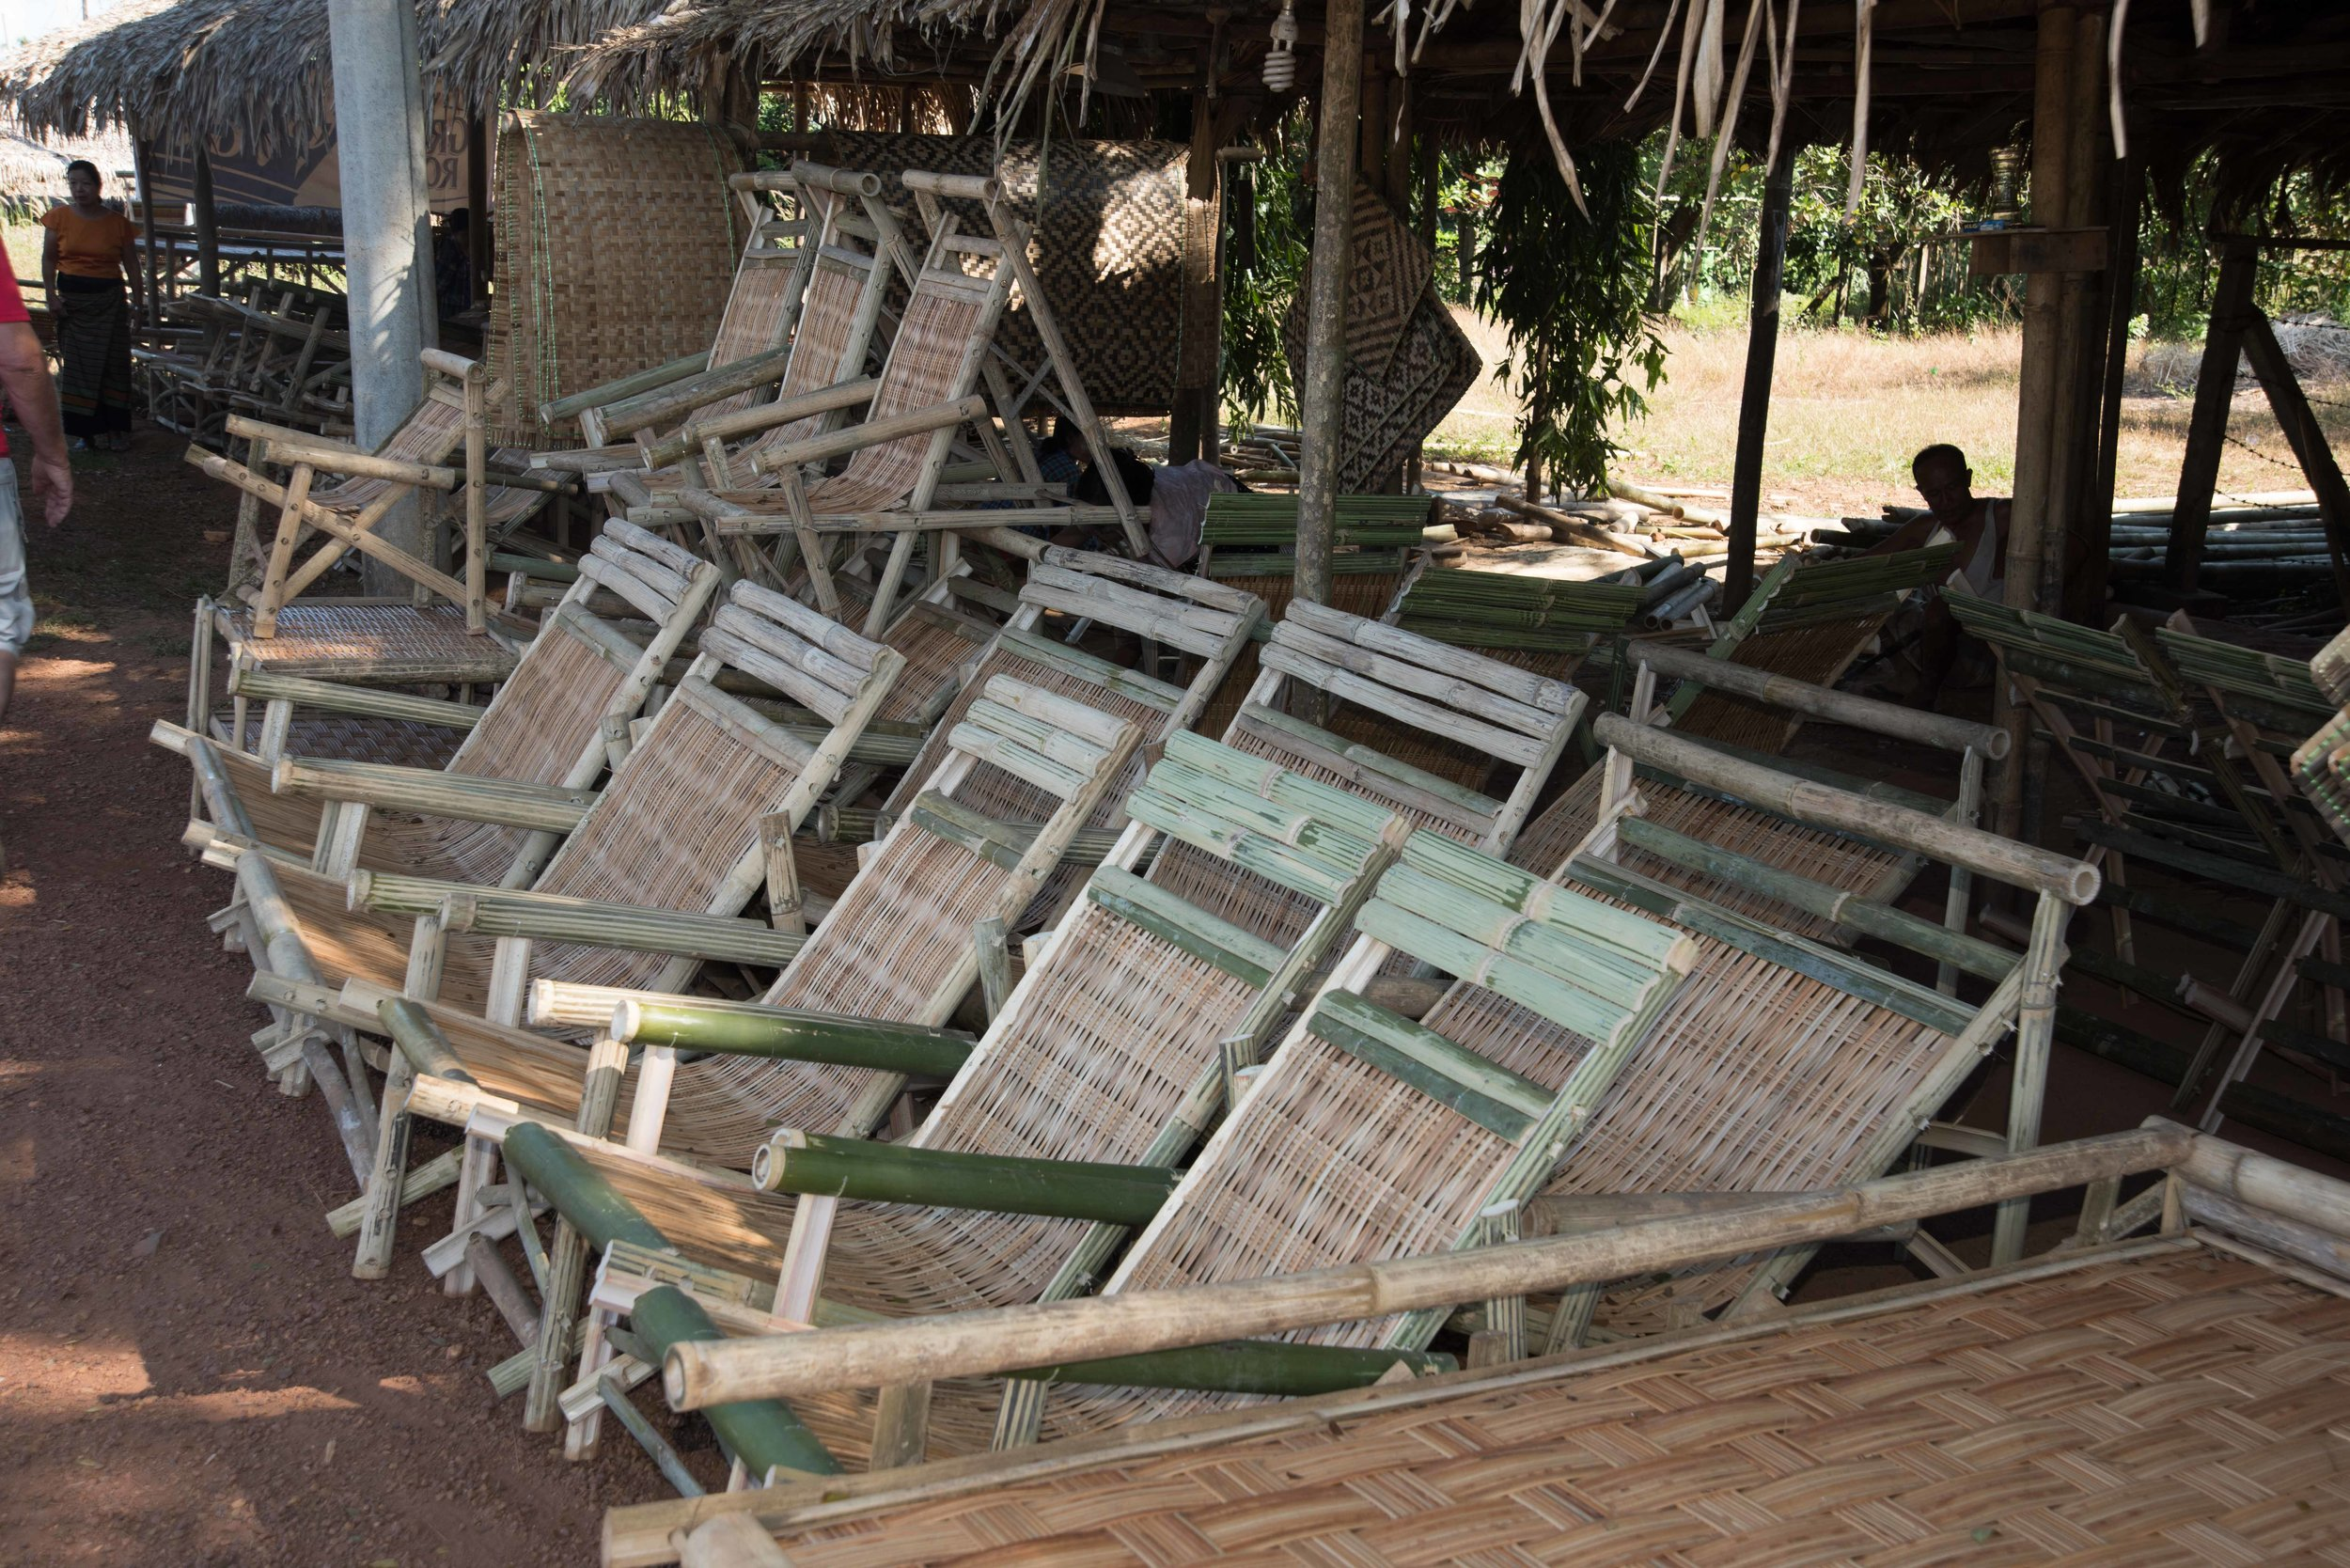 Chairs 001, Bamboo workshop, en route to Yangon, Myanmar, 25 Nov 2017.jpg